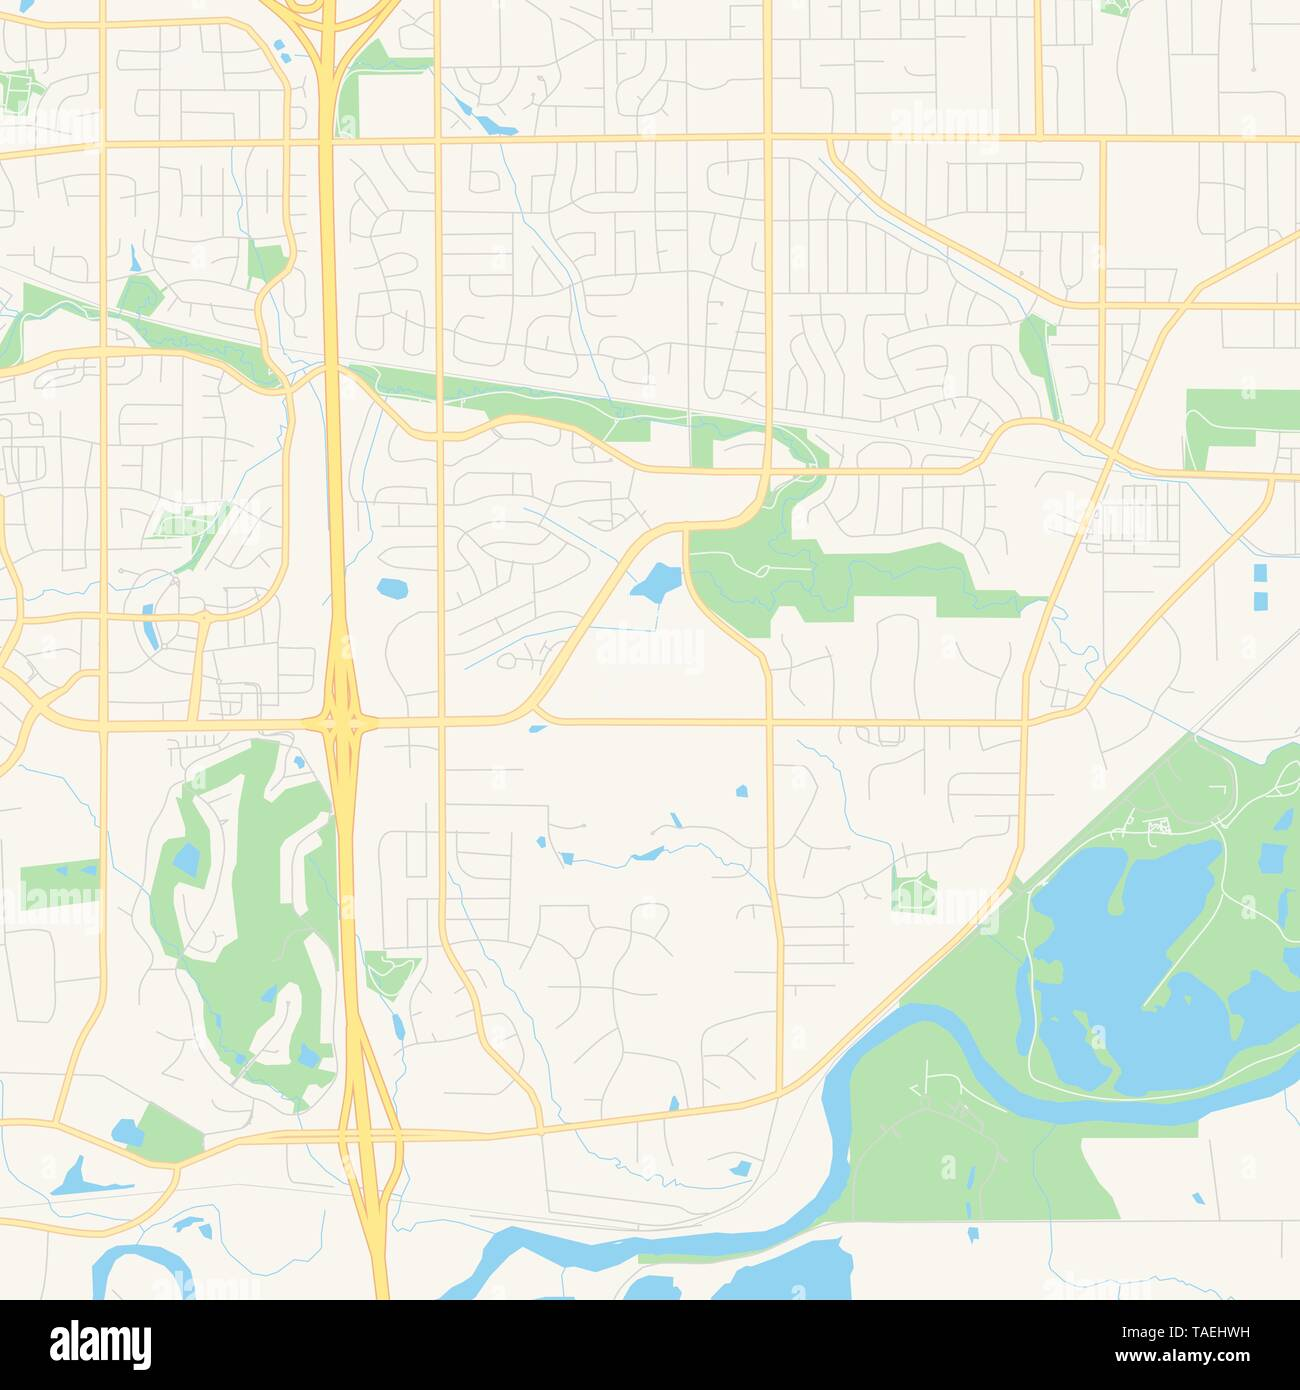 image relating to Printable Map of Iowa referred to as Vacant vector map of West Des Moines, Iowa, United states, printable